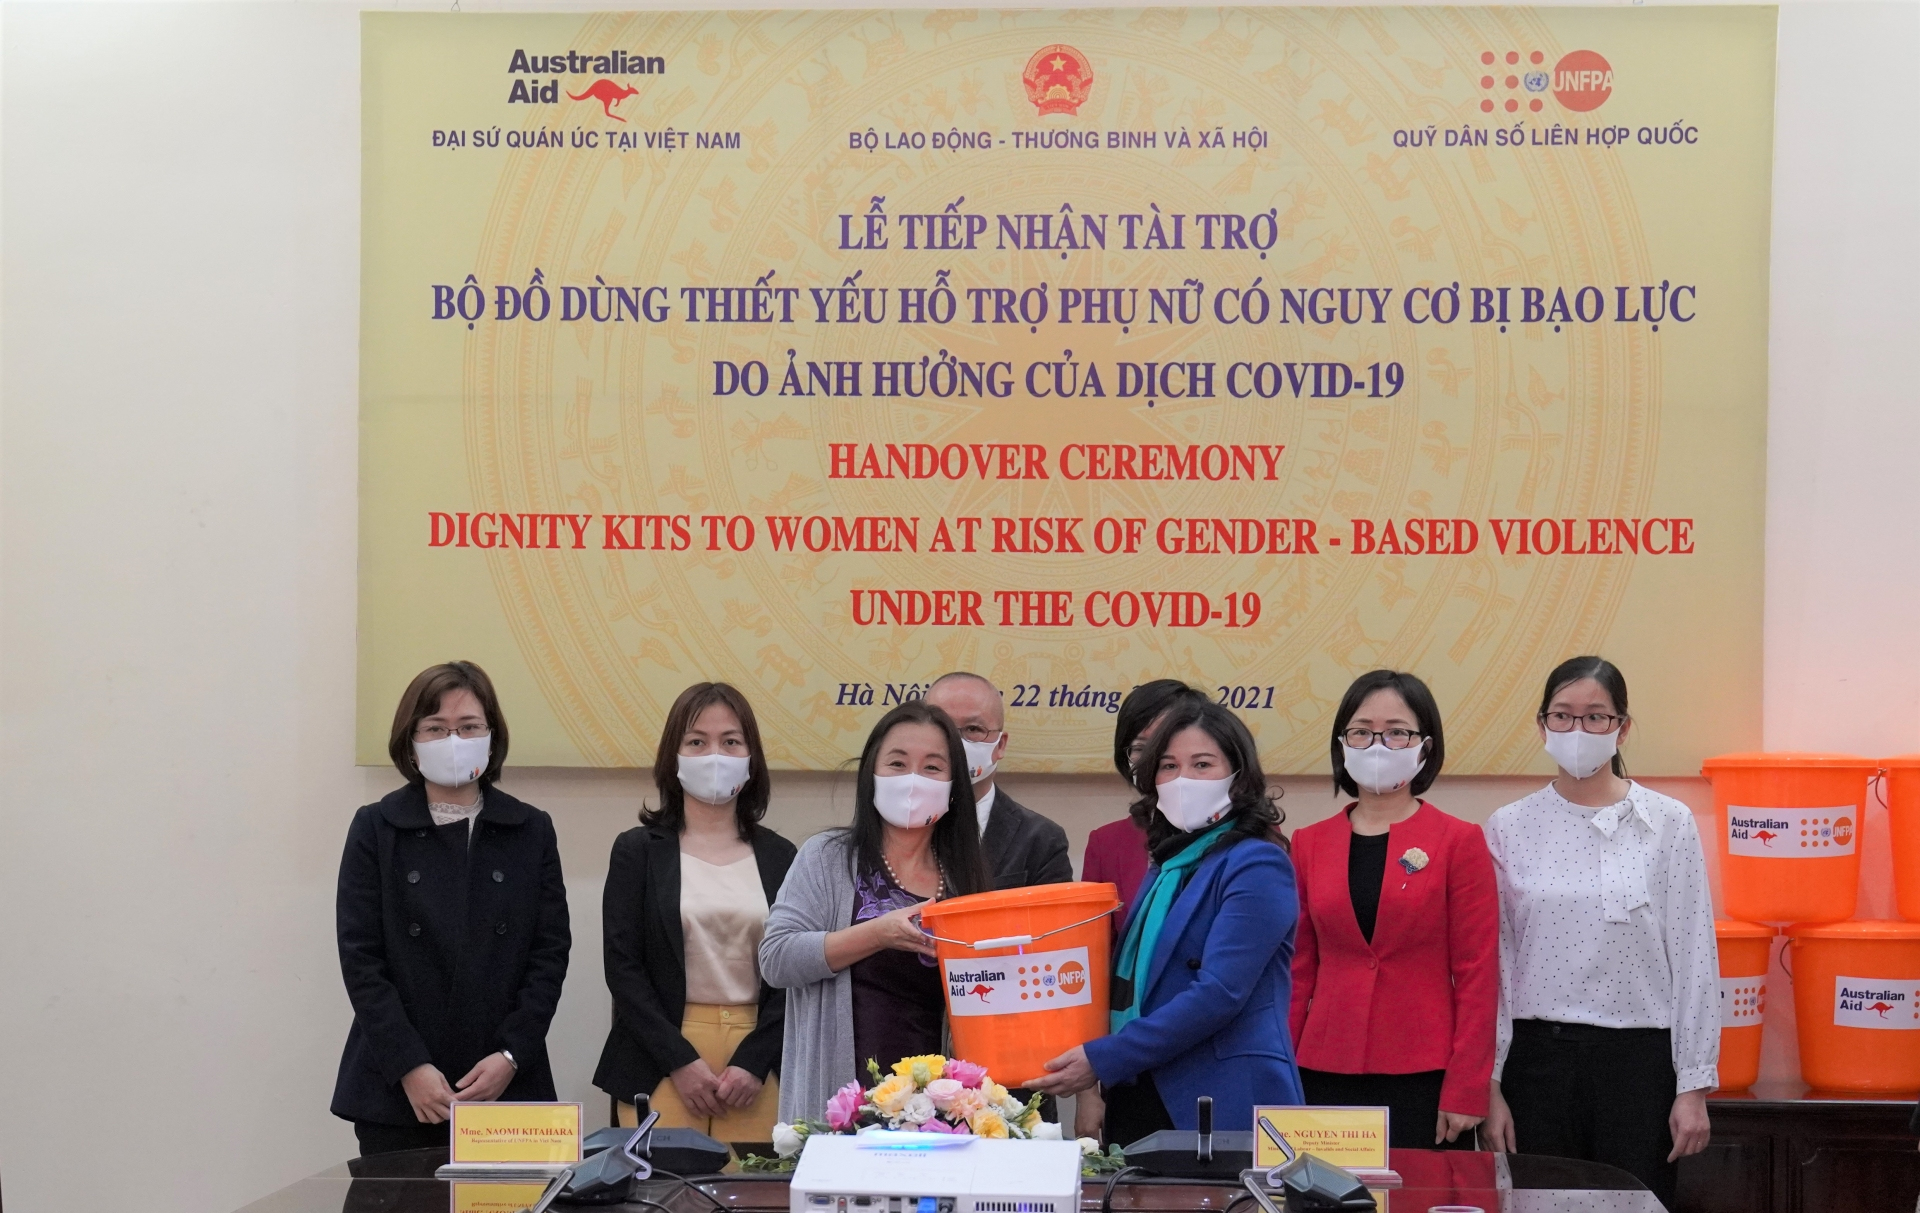 2,750 Dignity Kits support women and girls at risk of violence amidst COVID 19